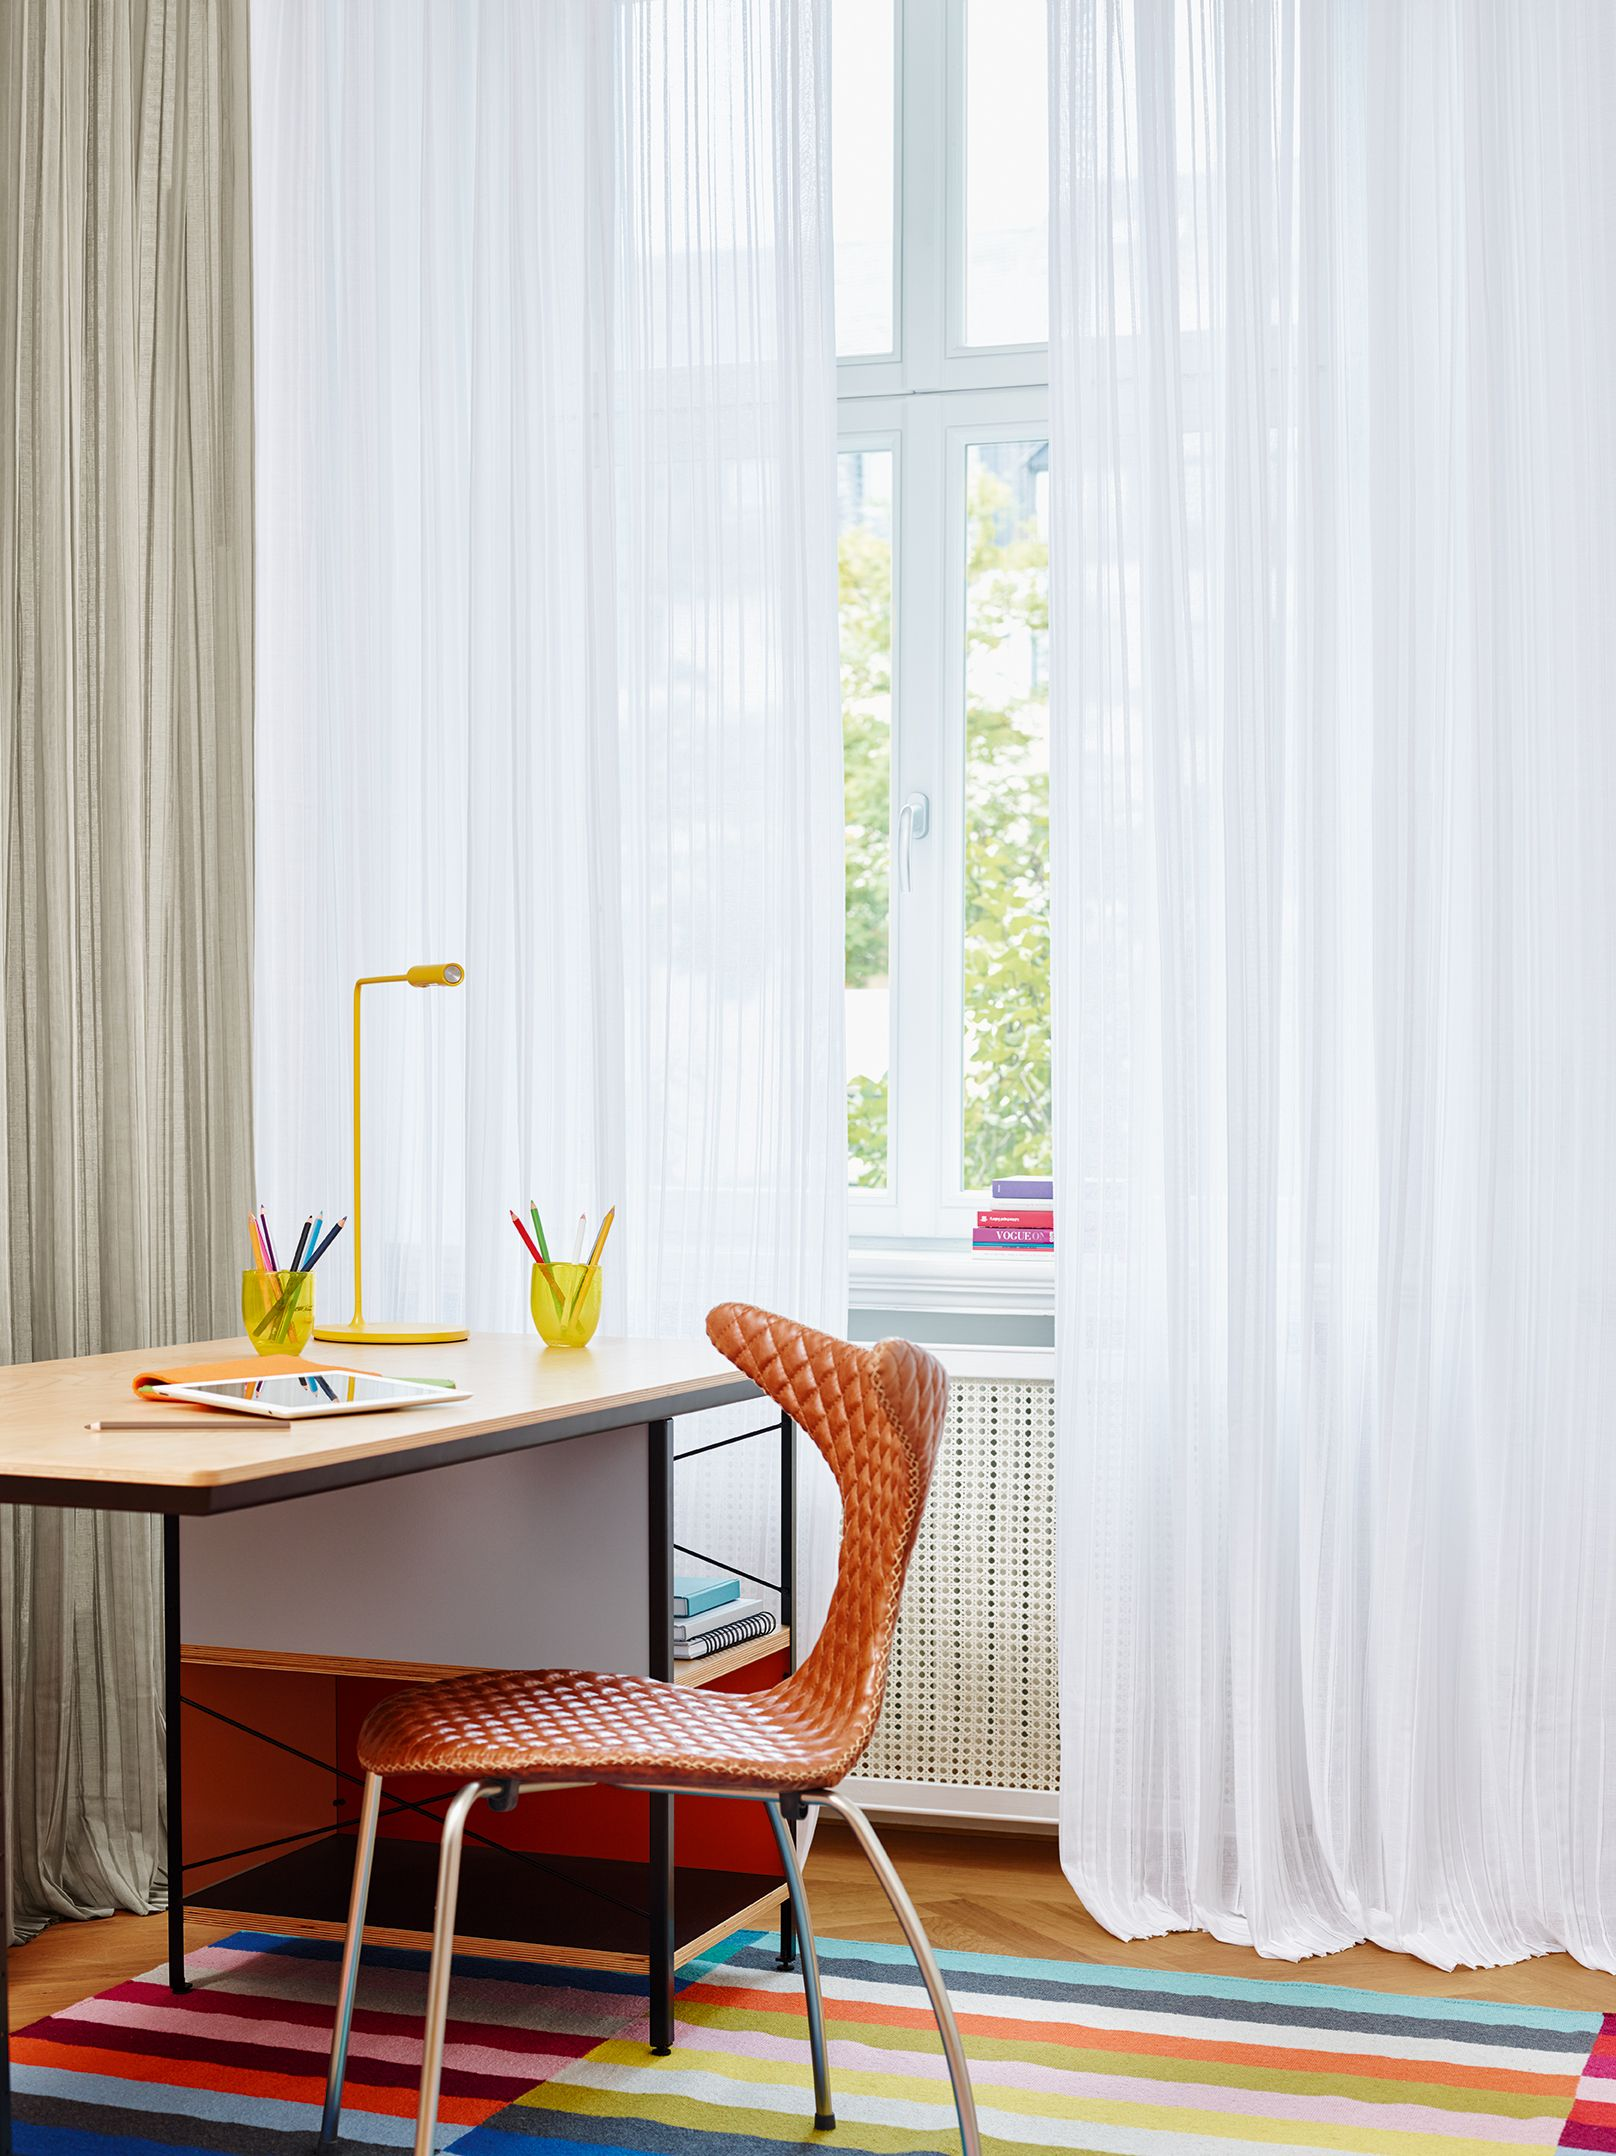 Workplace Near The Window With Soft Curtains And Colourful Carpet